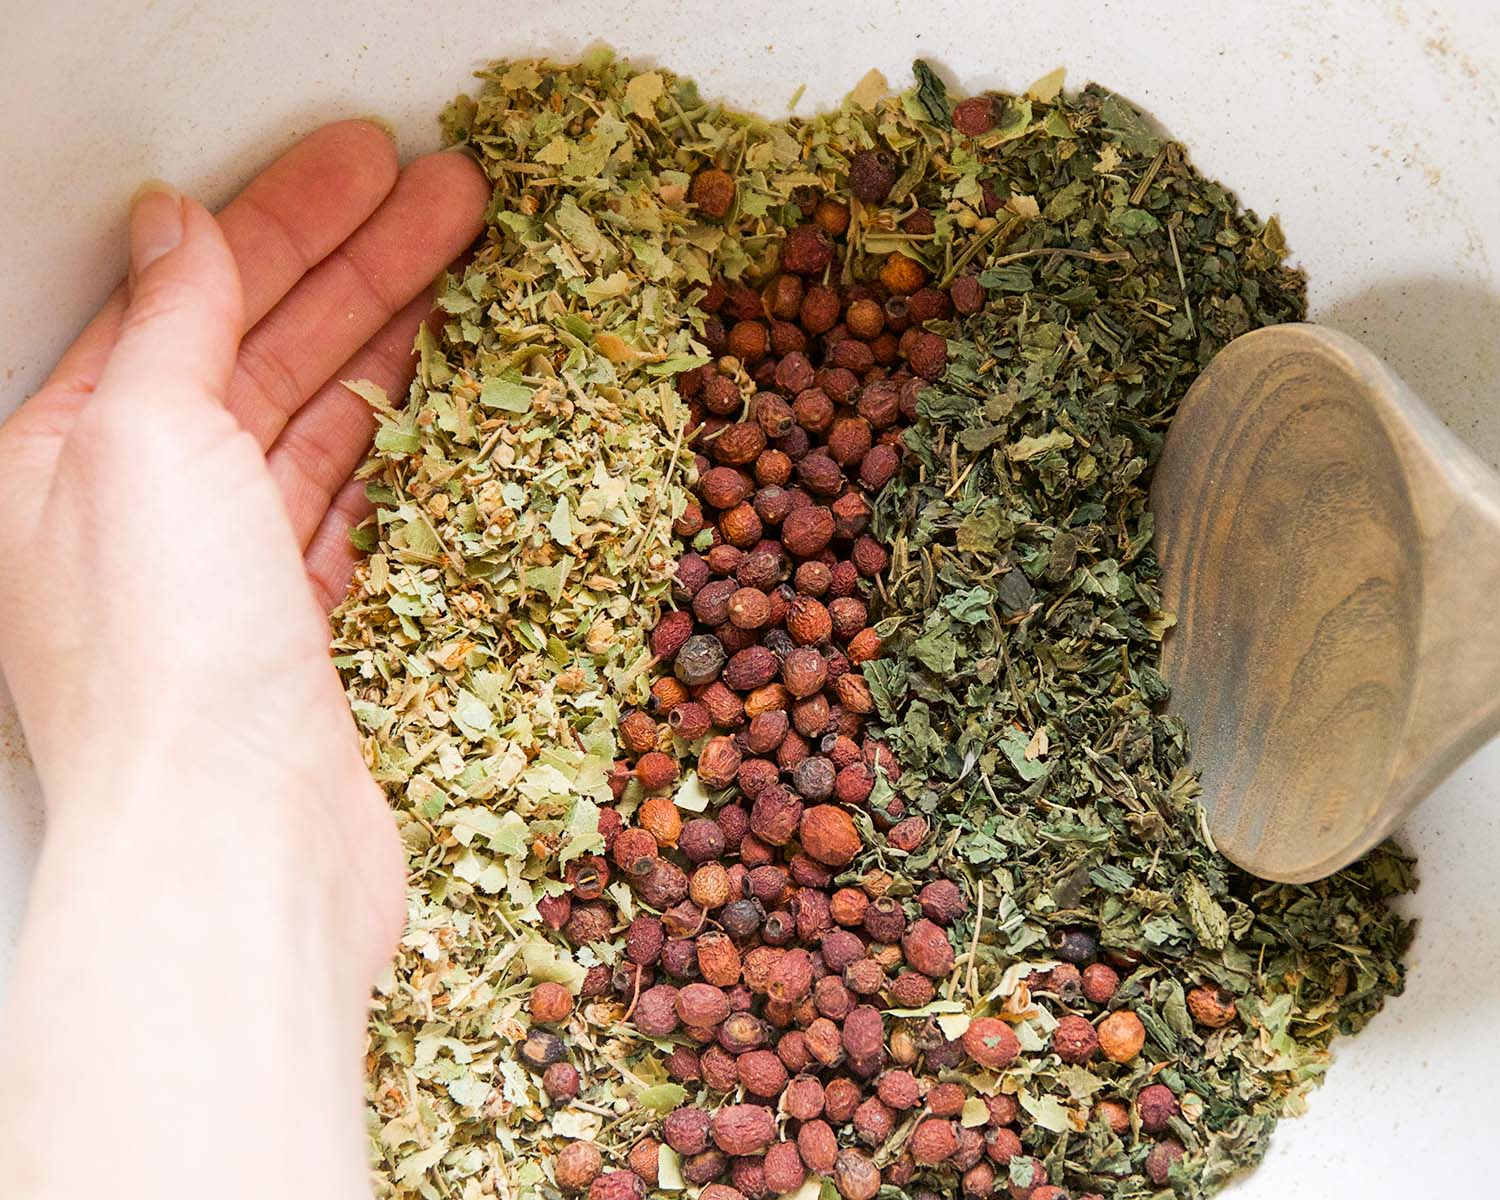 Spiritual Heart Medicine: How To Use Herbs for Emotional Self-Care | Herbal Academy | Tending to emotional self-care, or the spiritual heart, is necessary for overall vitality. Here are some herbs and recipes to help you get started.